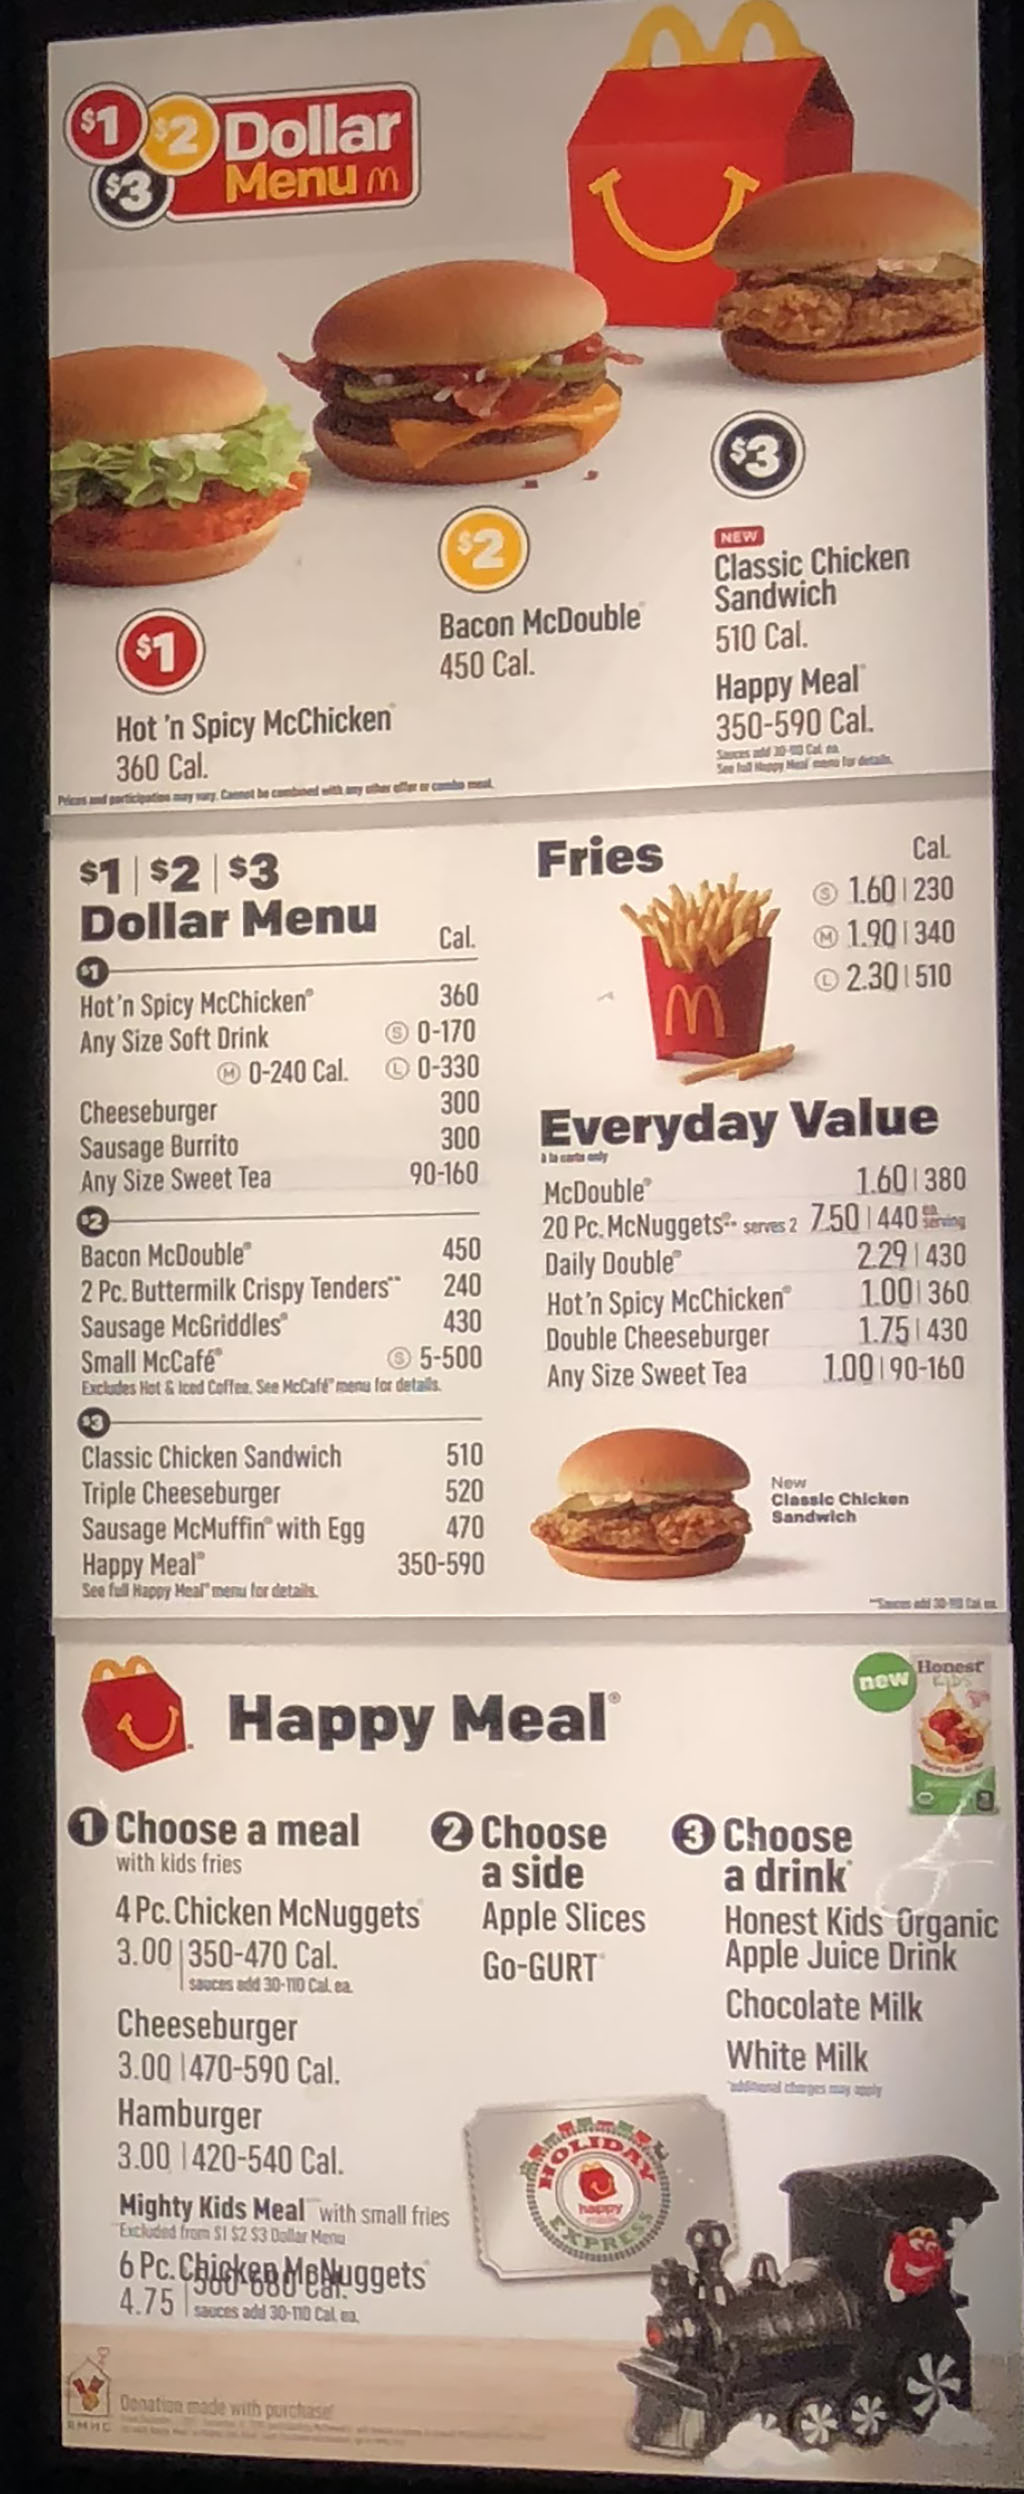 Mcdonalds menu with prices slc menu mcdonalds menu dollar menu and happy meals altavistaventures Gallery